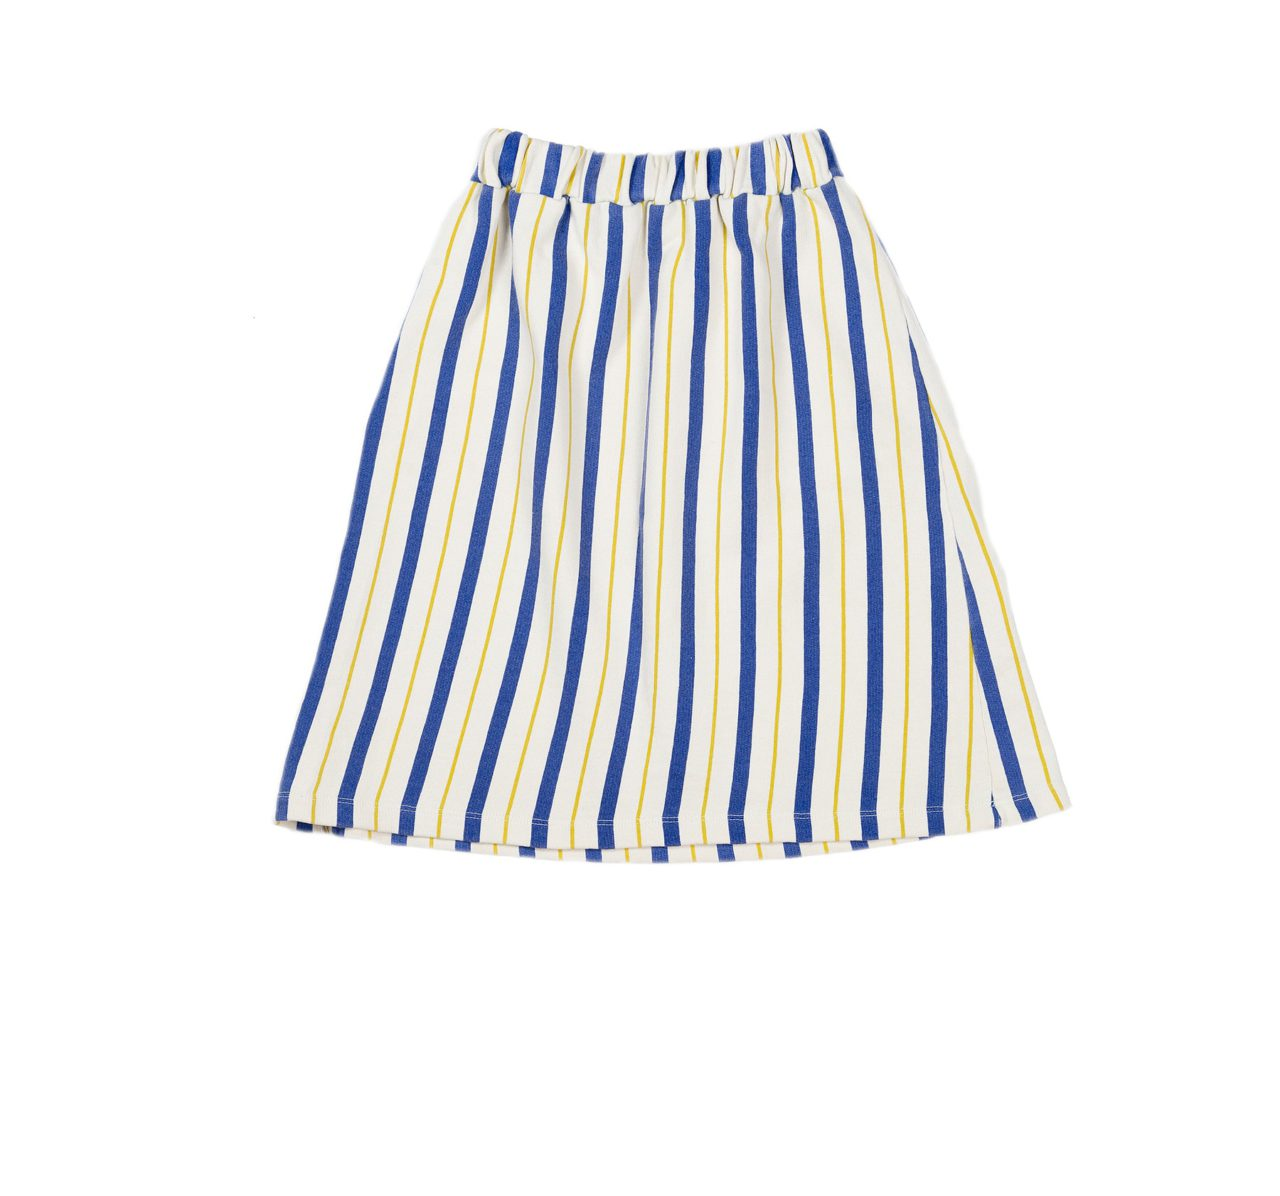 thecampamento_striped_skirt_02